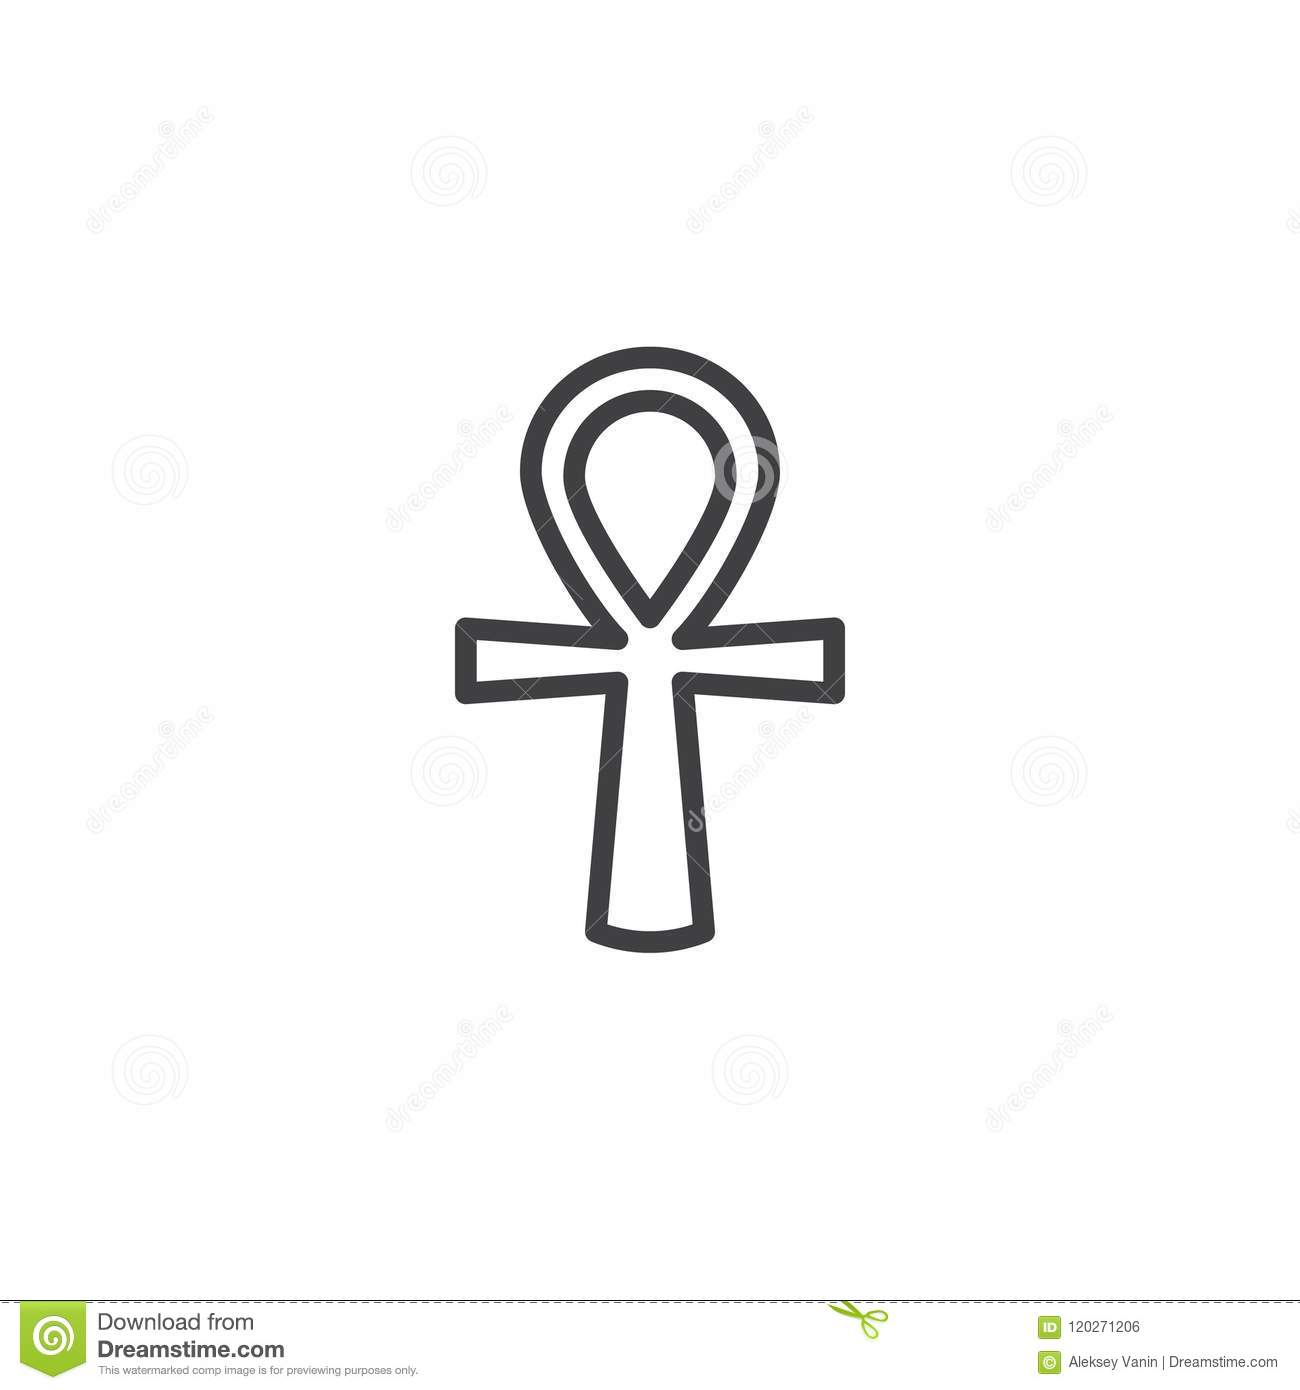 Ankh Outline Icon Stock Vector Illustration Of Antique 120271206